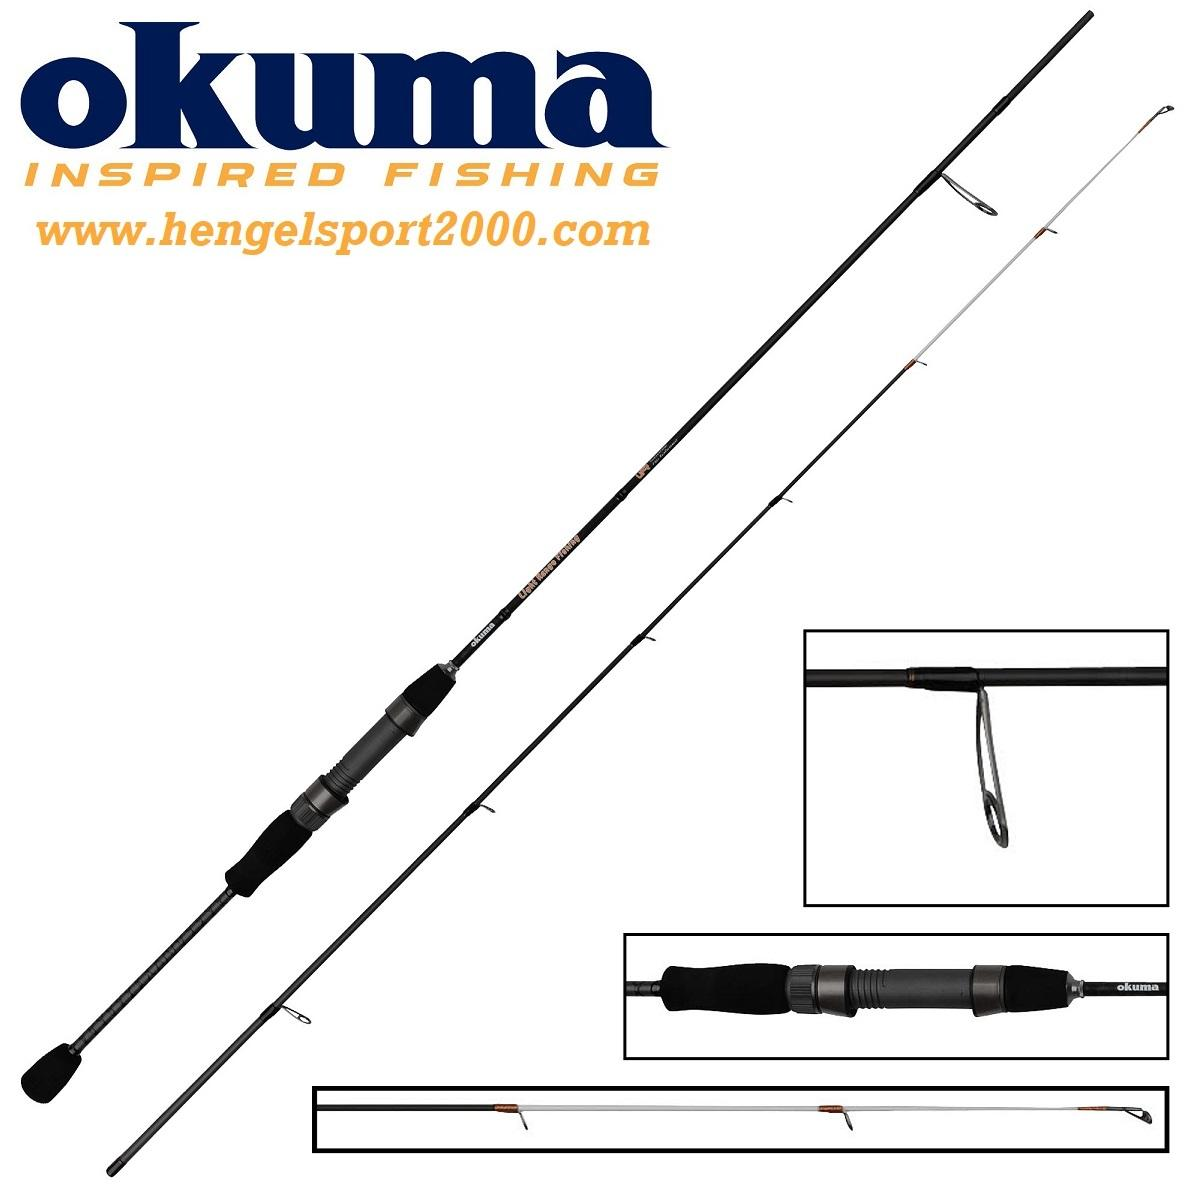 Okuma Light Range Fishing Spin 216 cm 3 - 12 gram